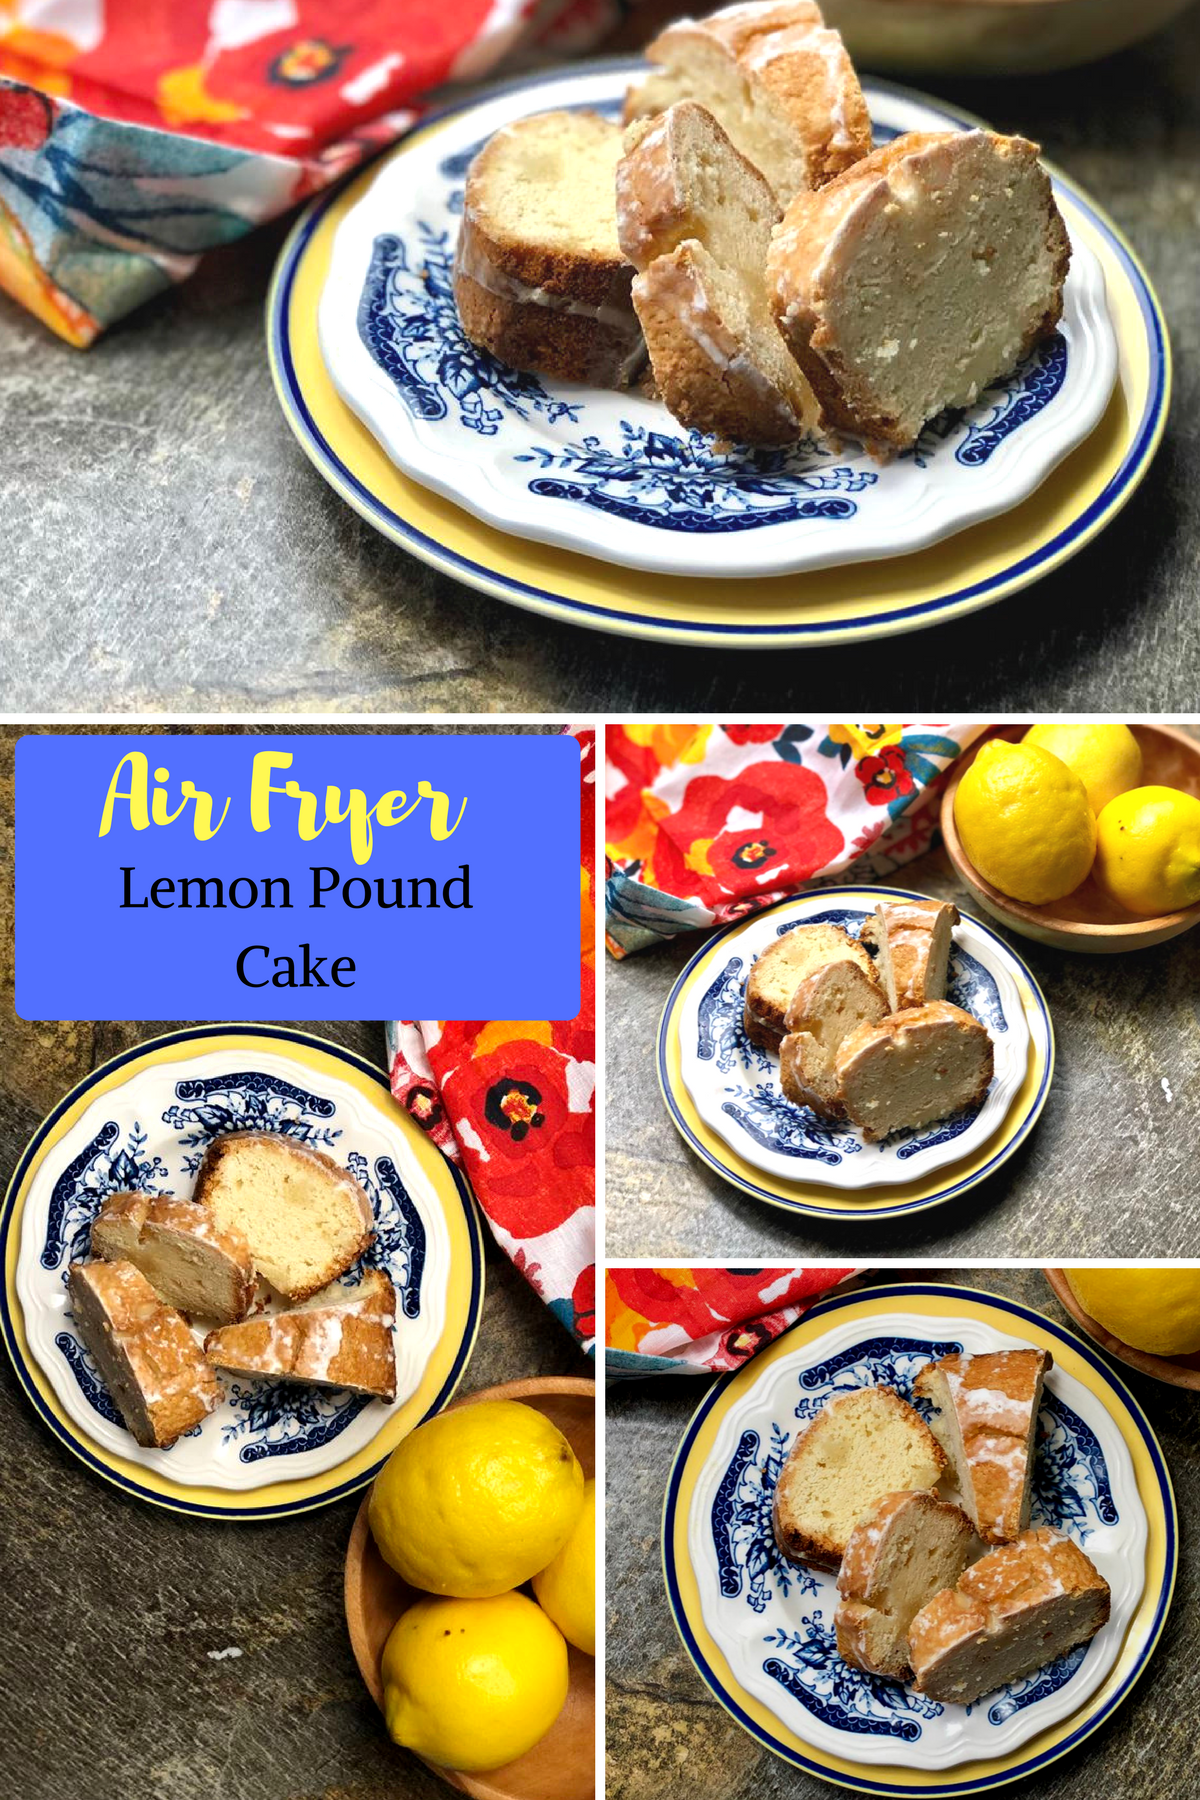 I grew up making lemon pound cake, and now that I am an adult and have kids of my own I carry on the tradition. I have just upgraded my recipe and use my beloved Air Fryer. #airfruer #cake #poundcake #lemon